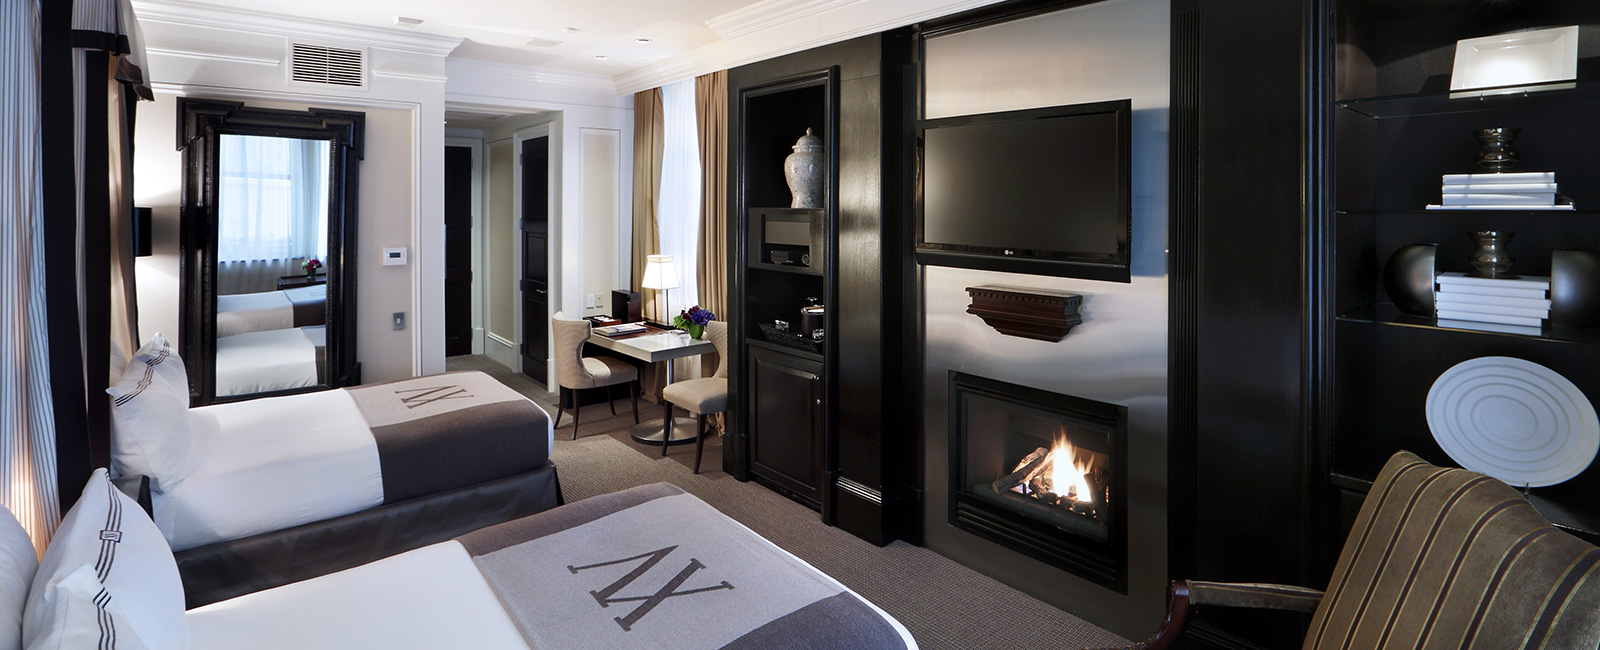 Double Contemporary Classic Room - 395 square feet. Fireplace and 42